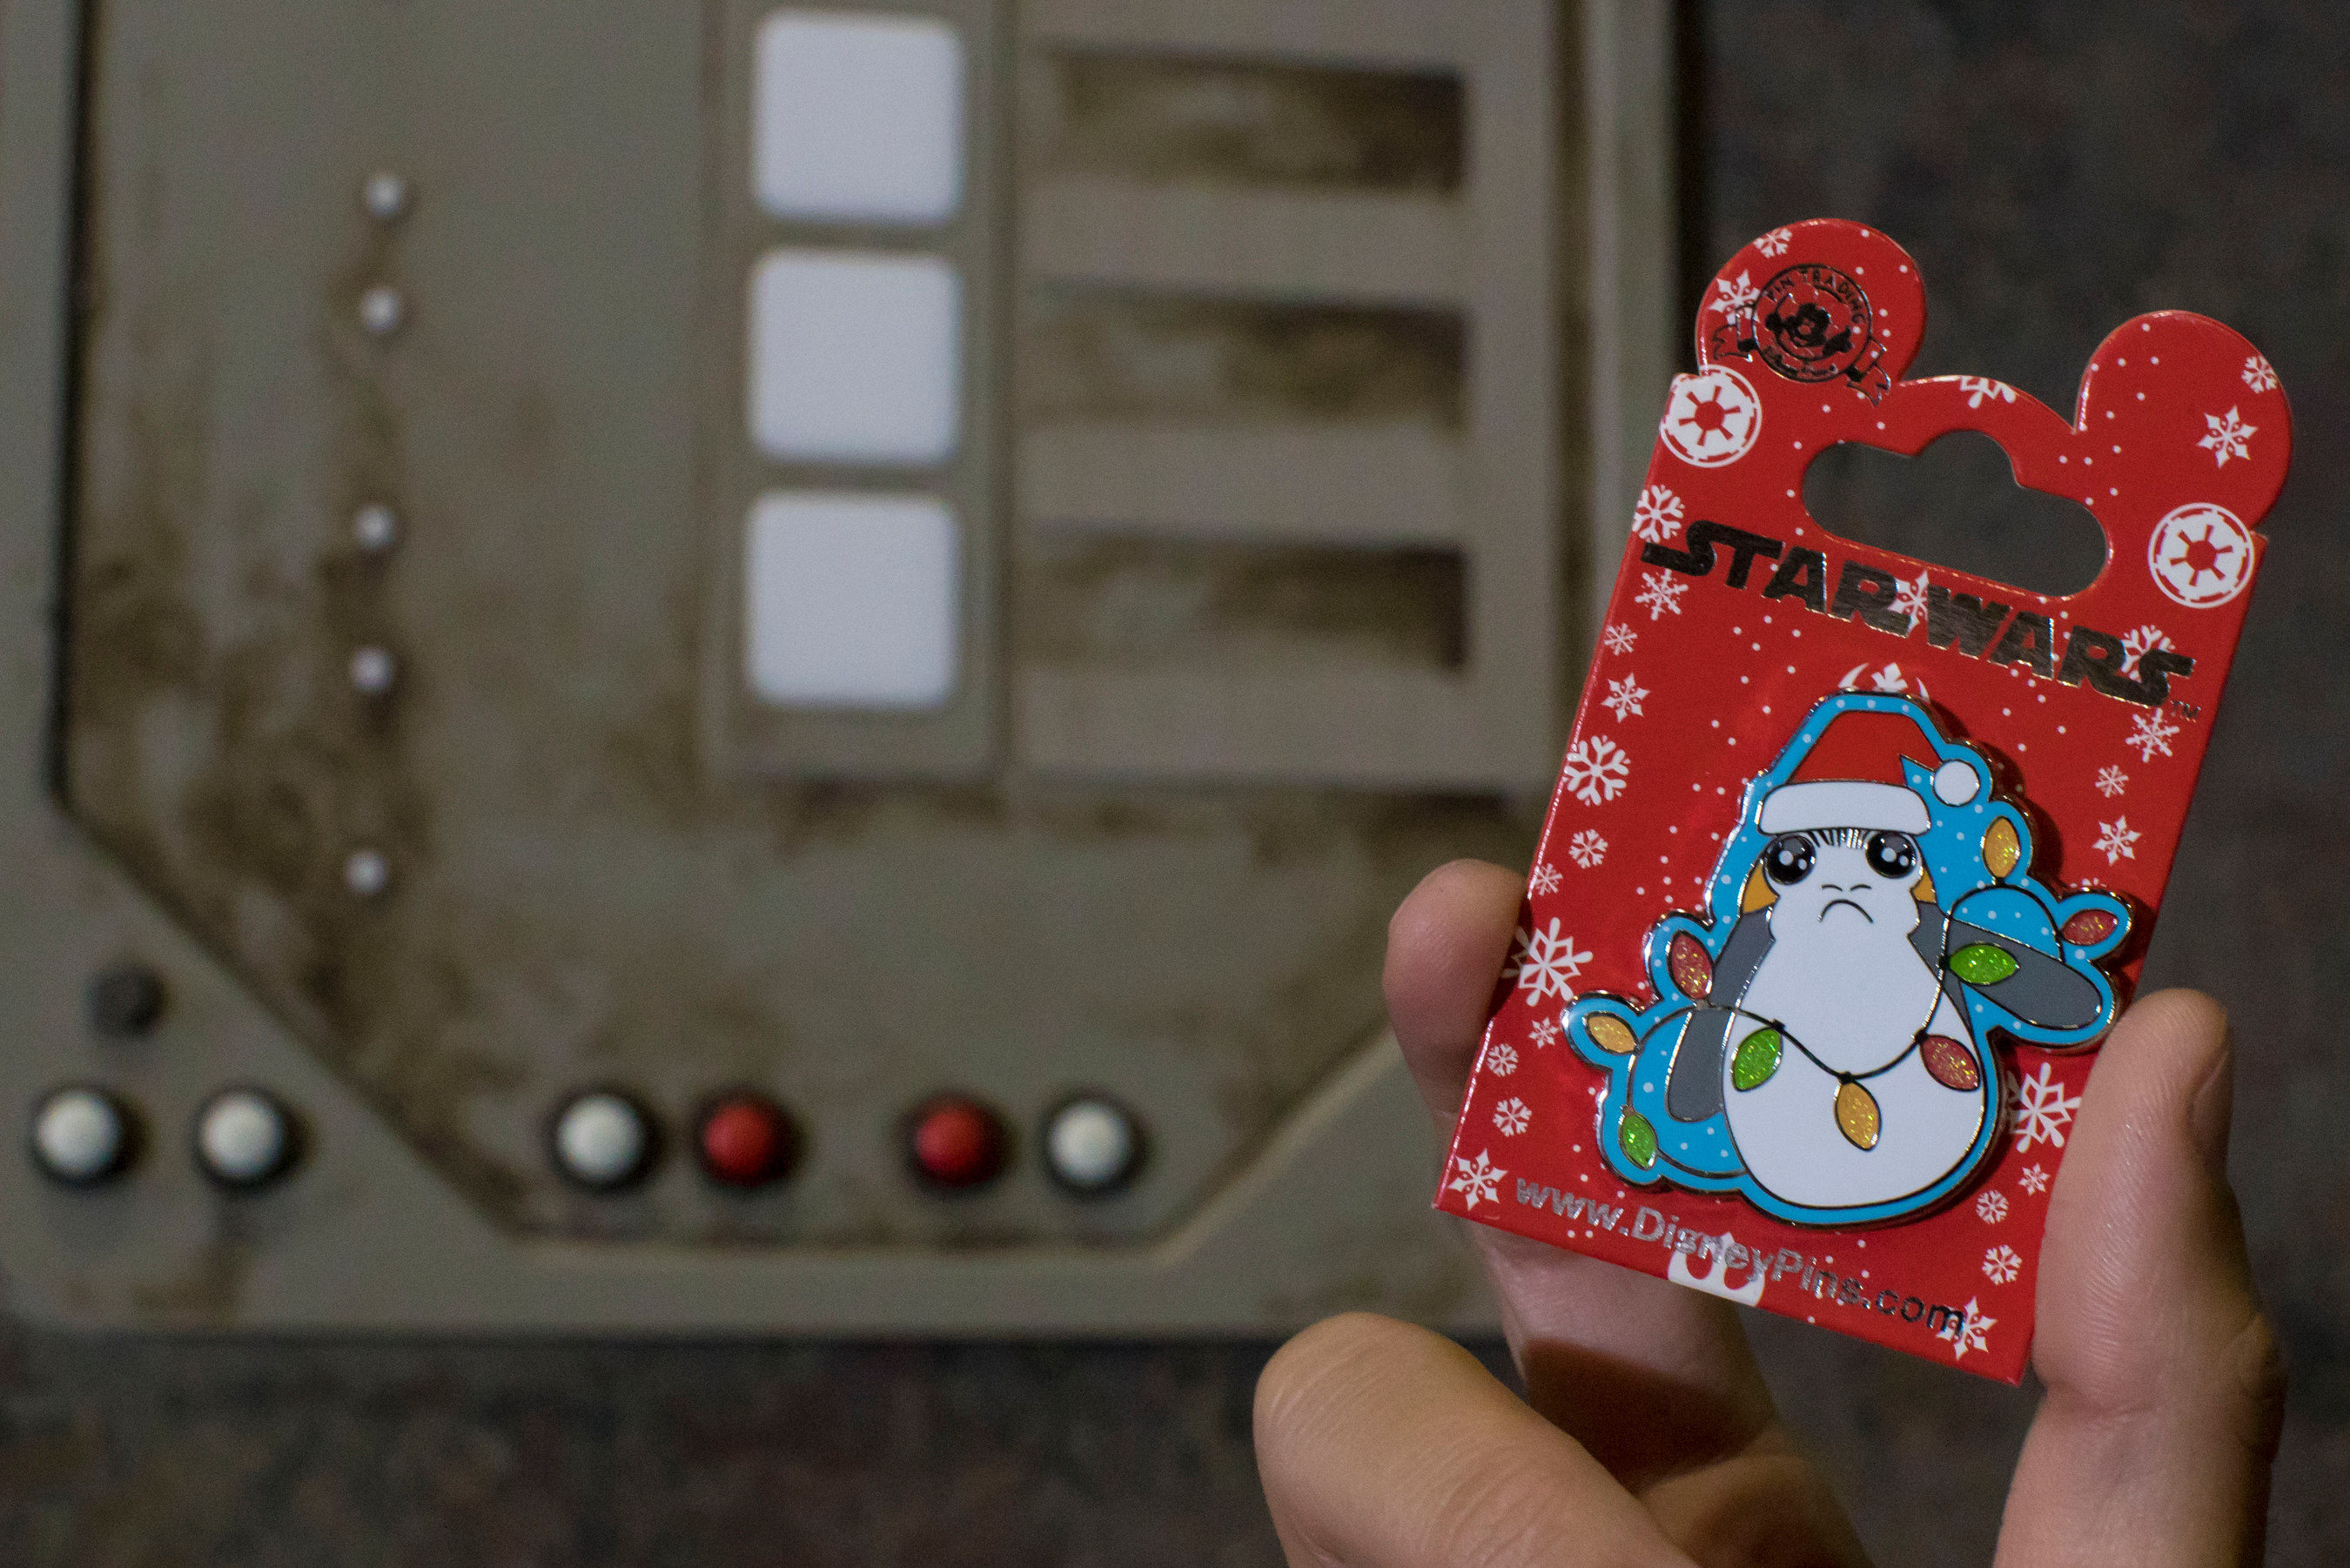 Disney guests will find an assortment of Star Wars holiday items throughout Disneyland Resort in California and Walt Disney World Resort in Florida during the holidays season, like this Star Wars Porg Holiday Pin. Other Star Wars holiday items include a Star Wars: GalaxyÕs Edge print, a Sandcrawler playset, Star Wars mega figurine set and more. (Joshua Sudock/Disneyland Resort)